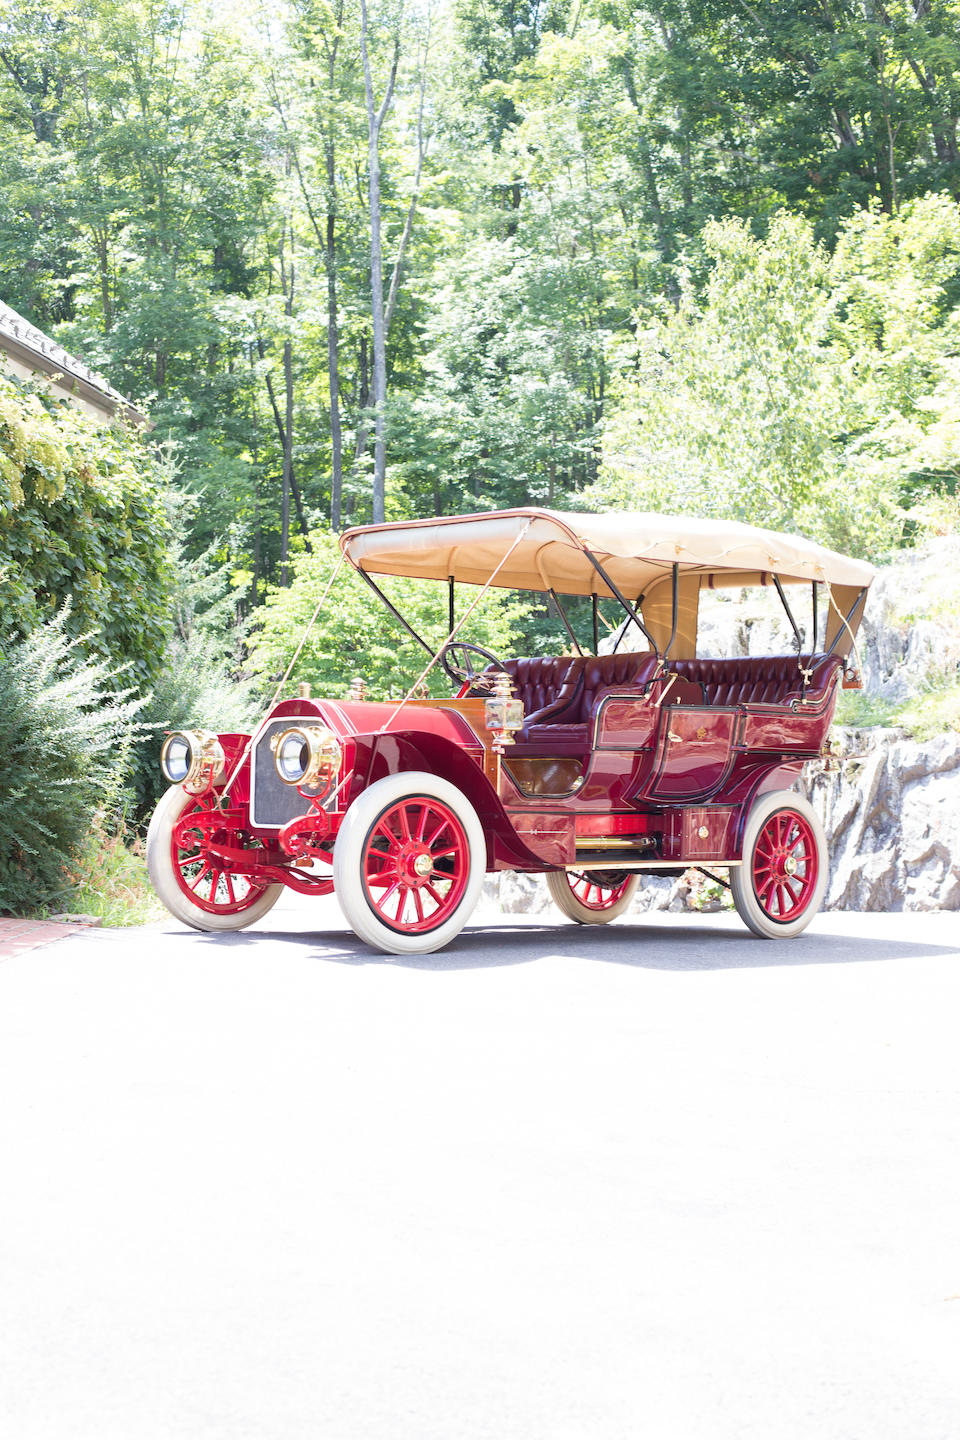 <i>The Ex-William F. Harrah, James A. Conant Collections</i><BR /><B>1907 Stearns 60hp Seven Passenger Touring</B><BR />Chassis no. 350<BR />Engine no. 150